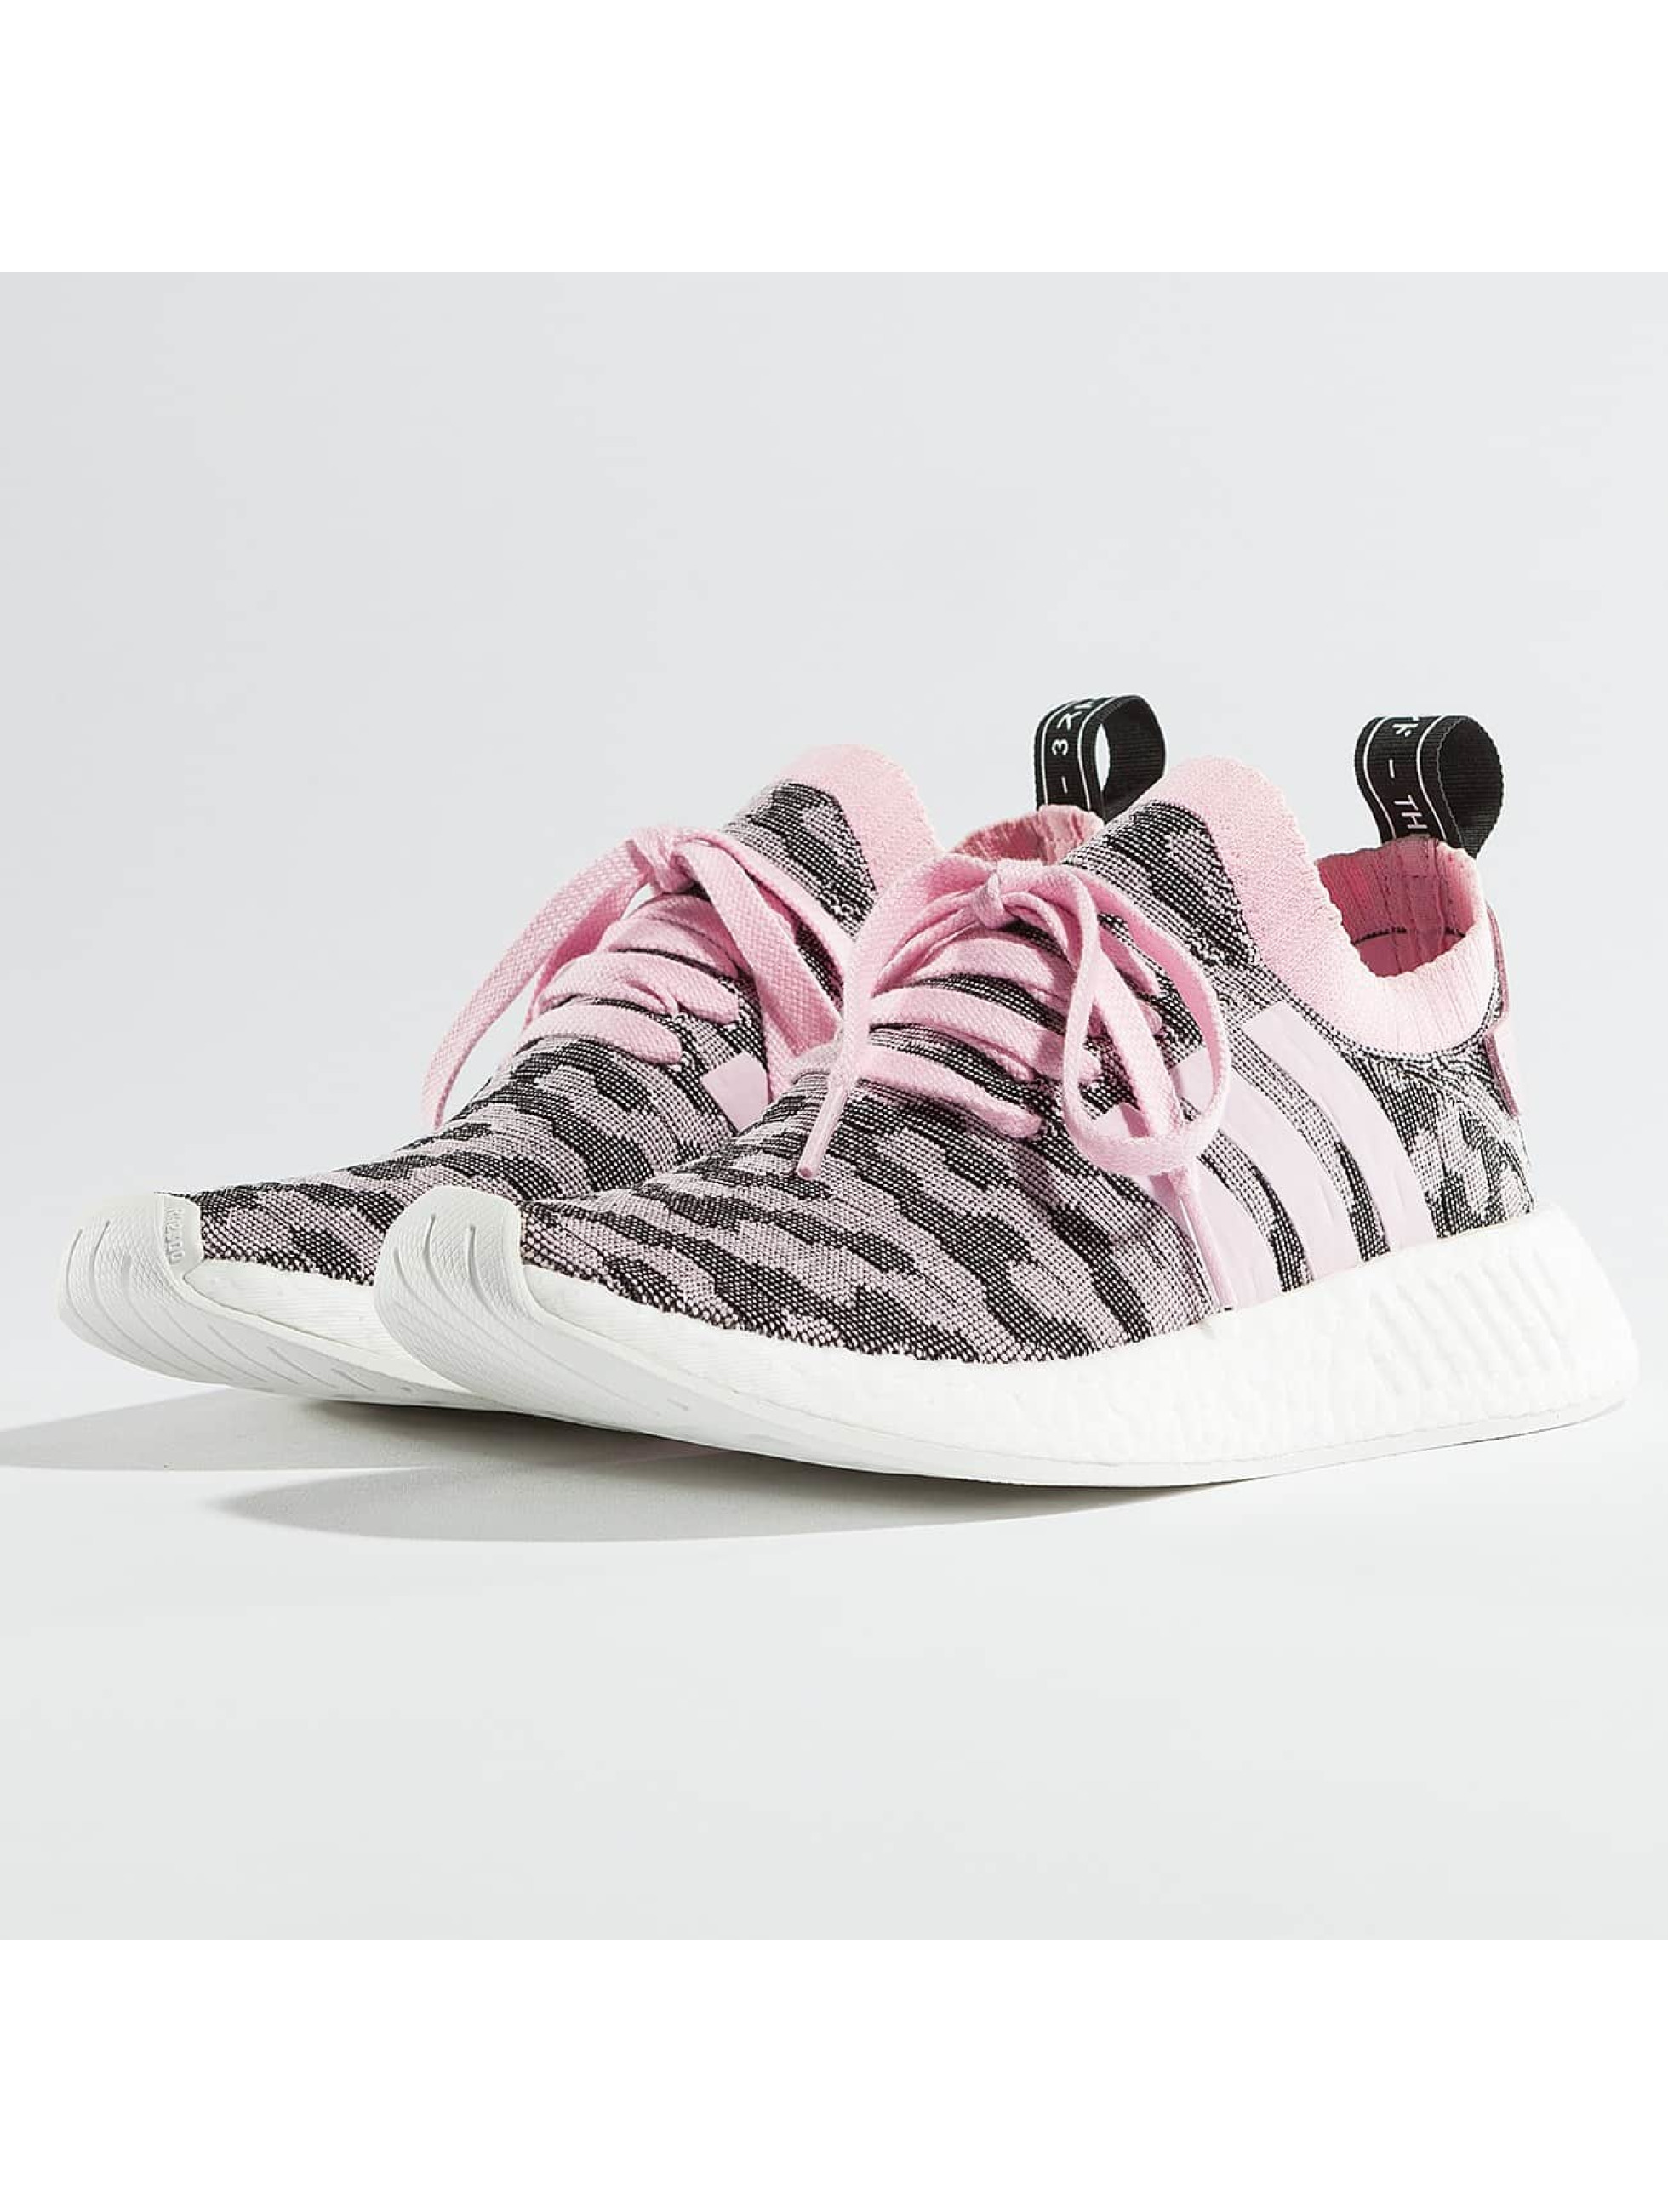 adidas damen schuhe sneaker nmd r2 pk w ebay. Black Bedroom Furniture Sets. Home Design Ideas